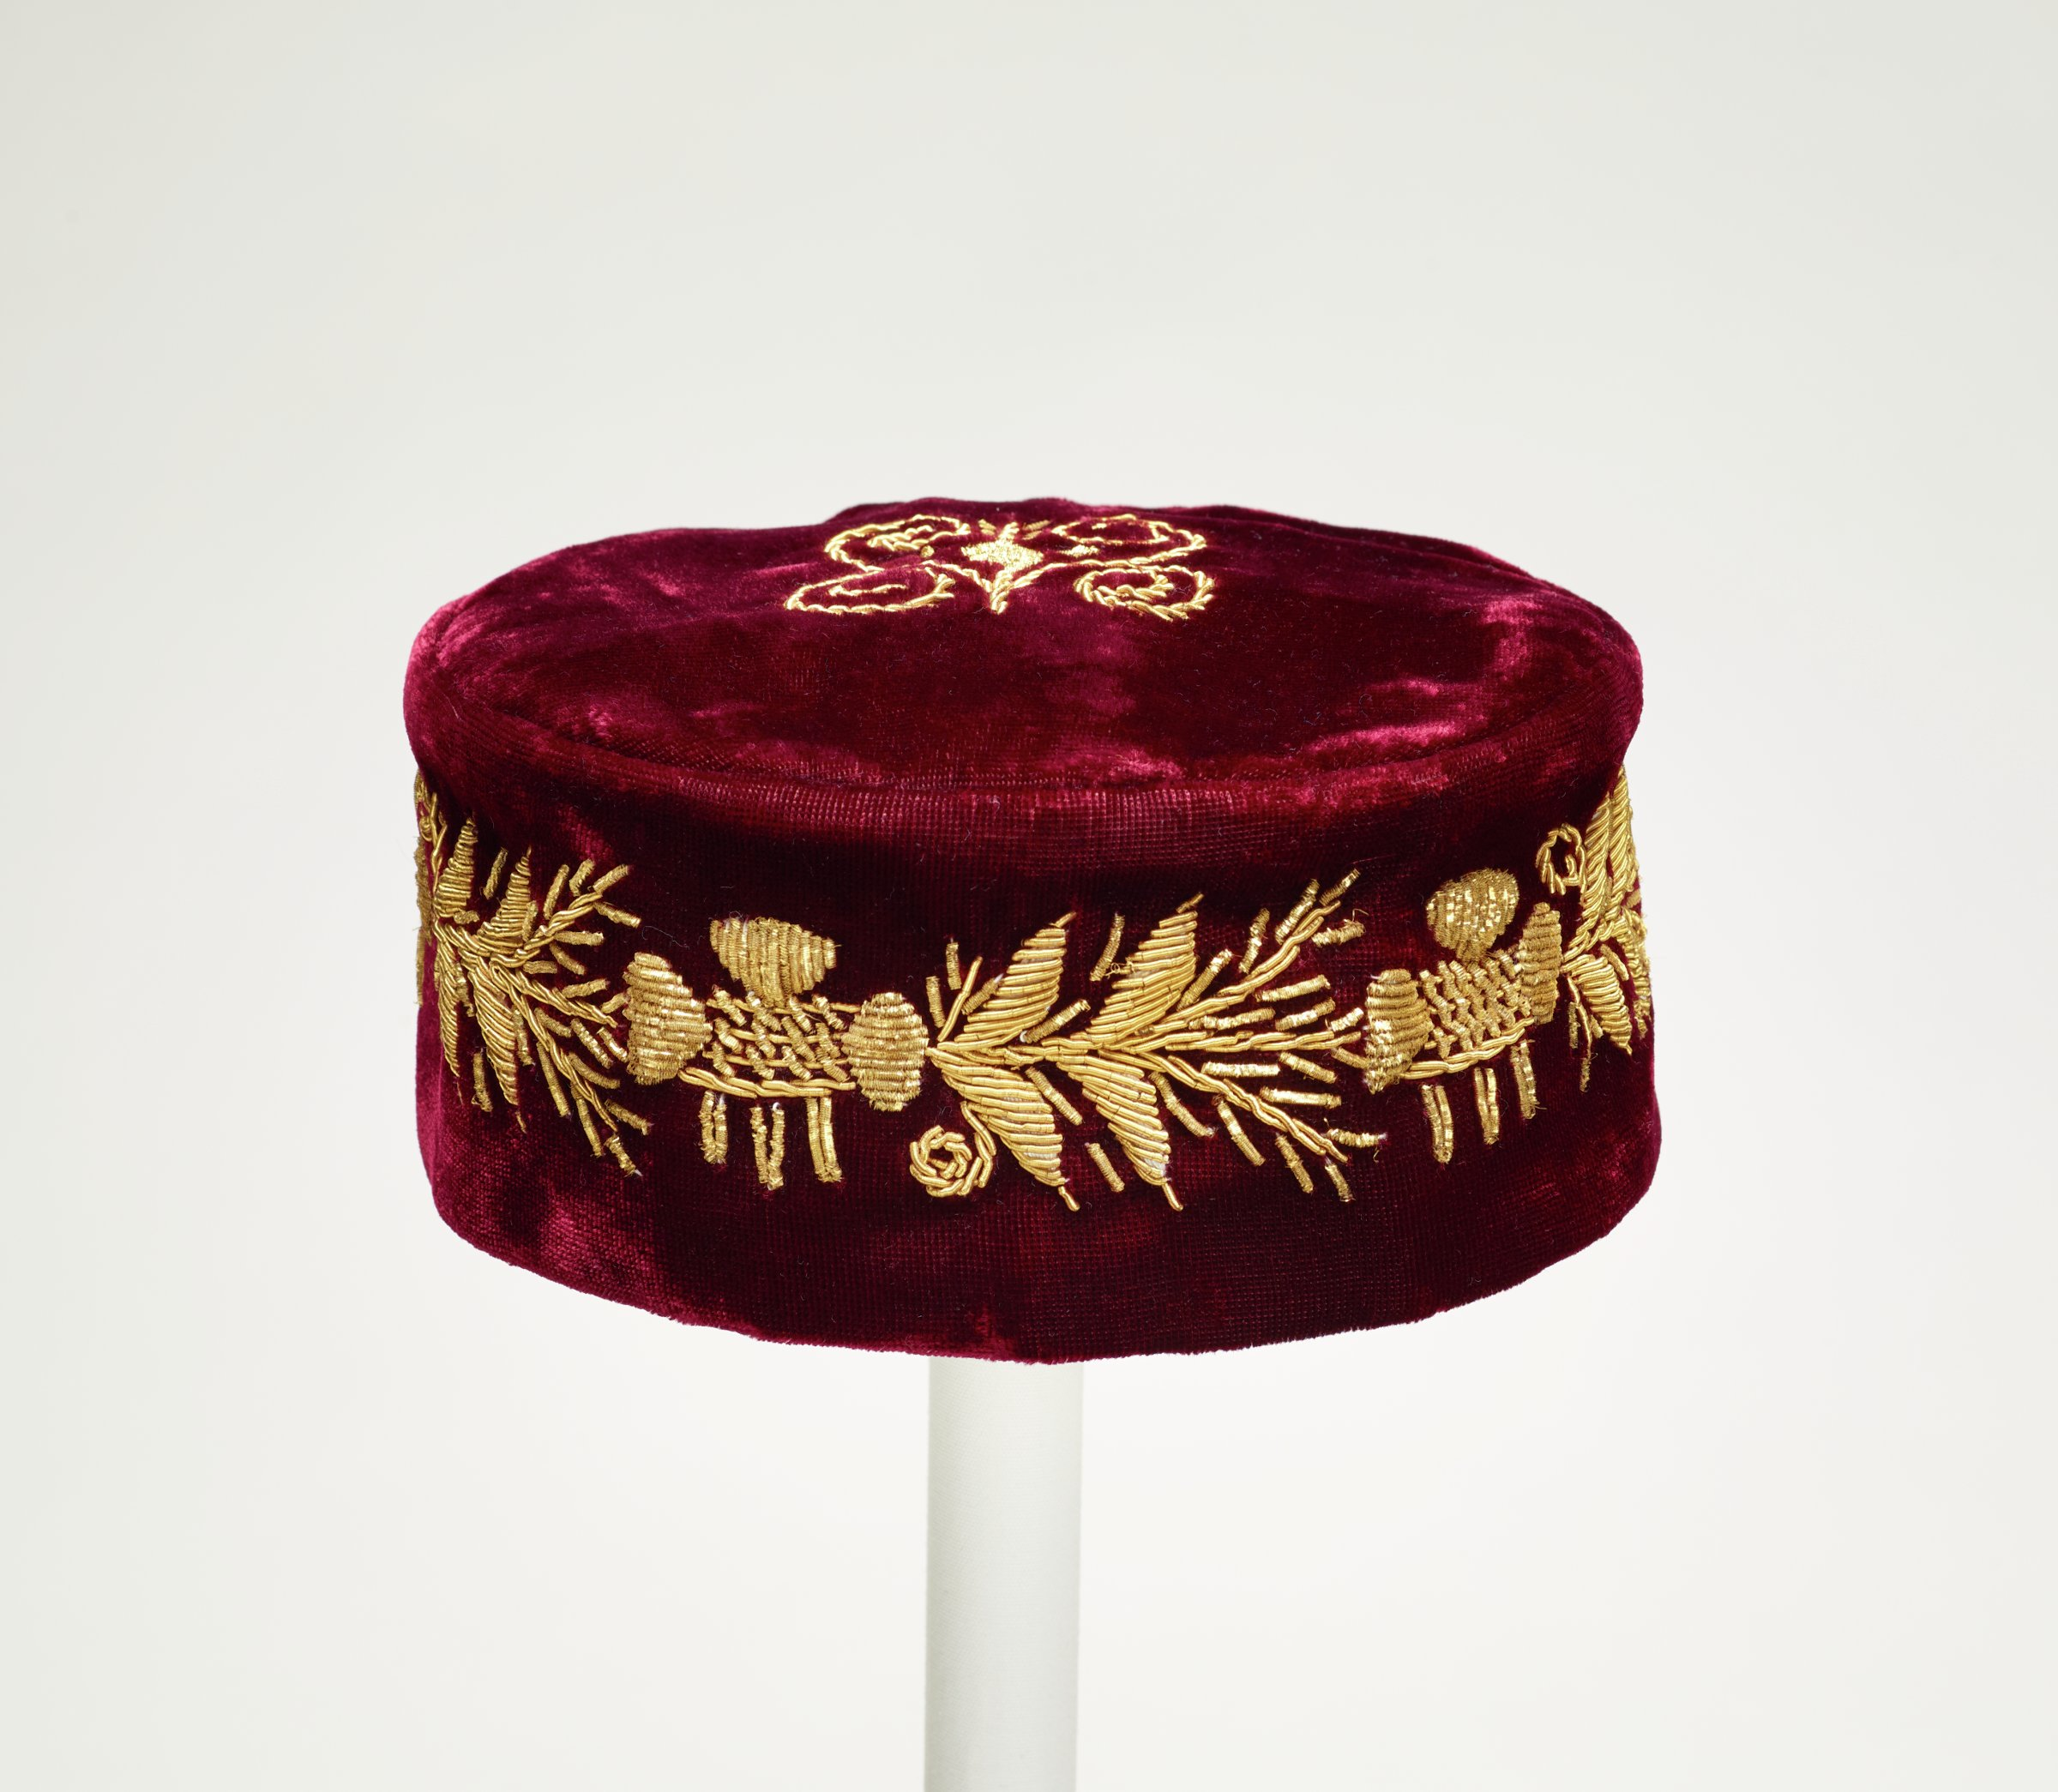 Red velvet man's kufi-style hat embellished with gold thread.